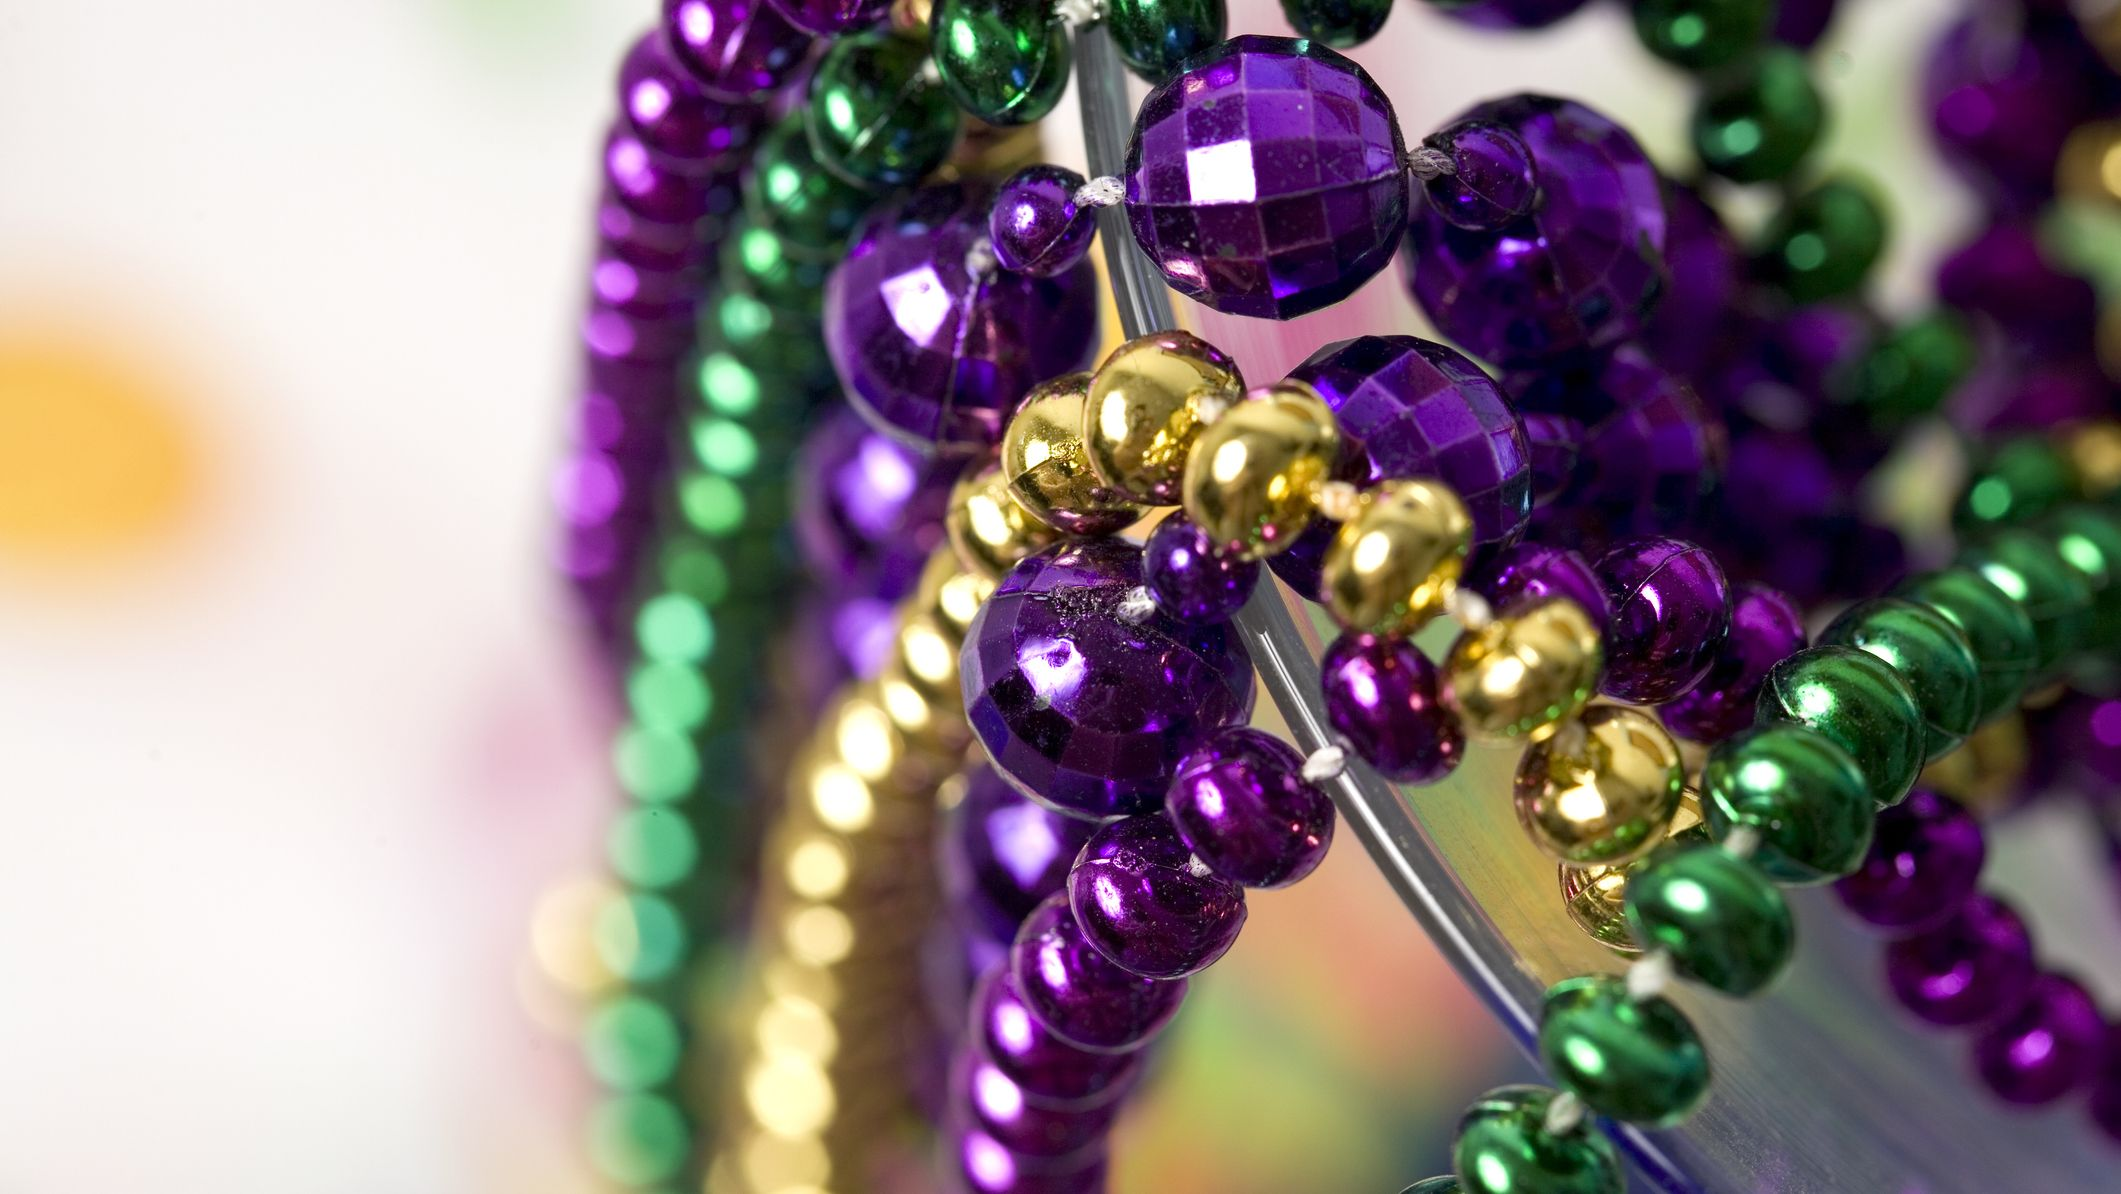 Why Do People Toss Beads During Mardi Gras?